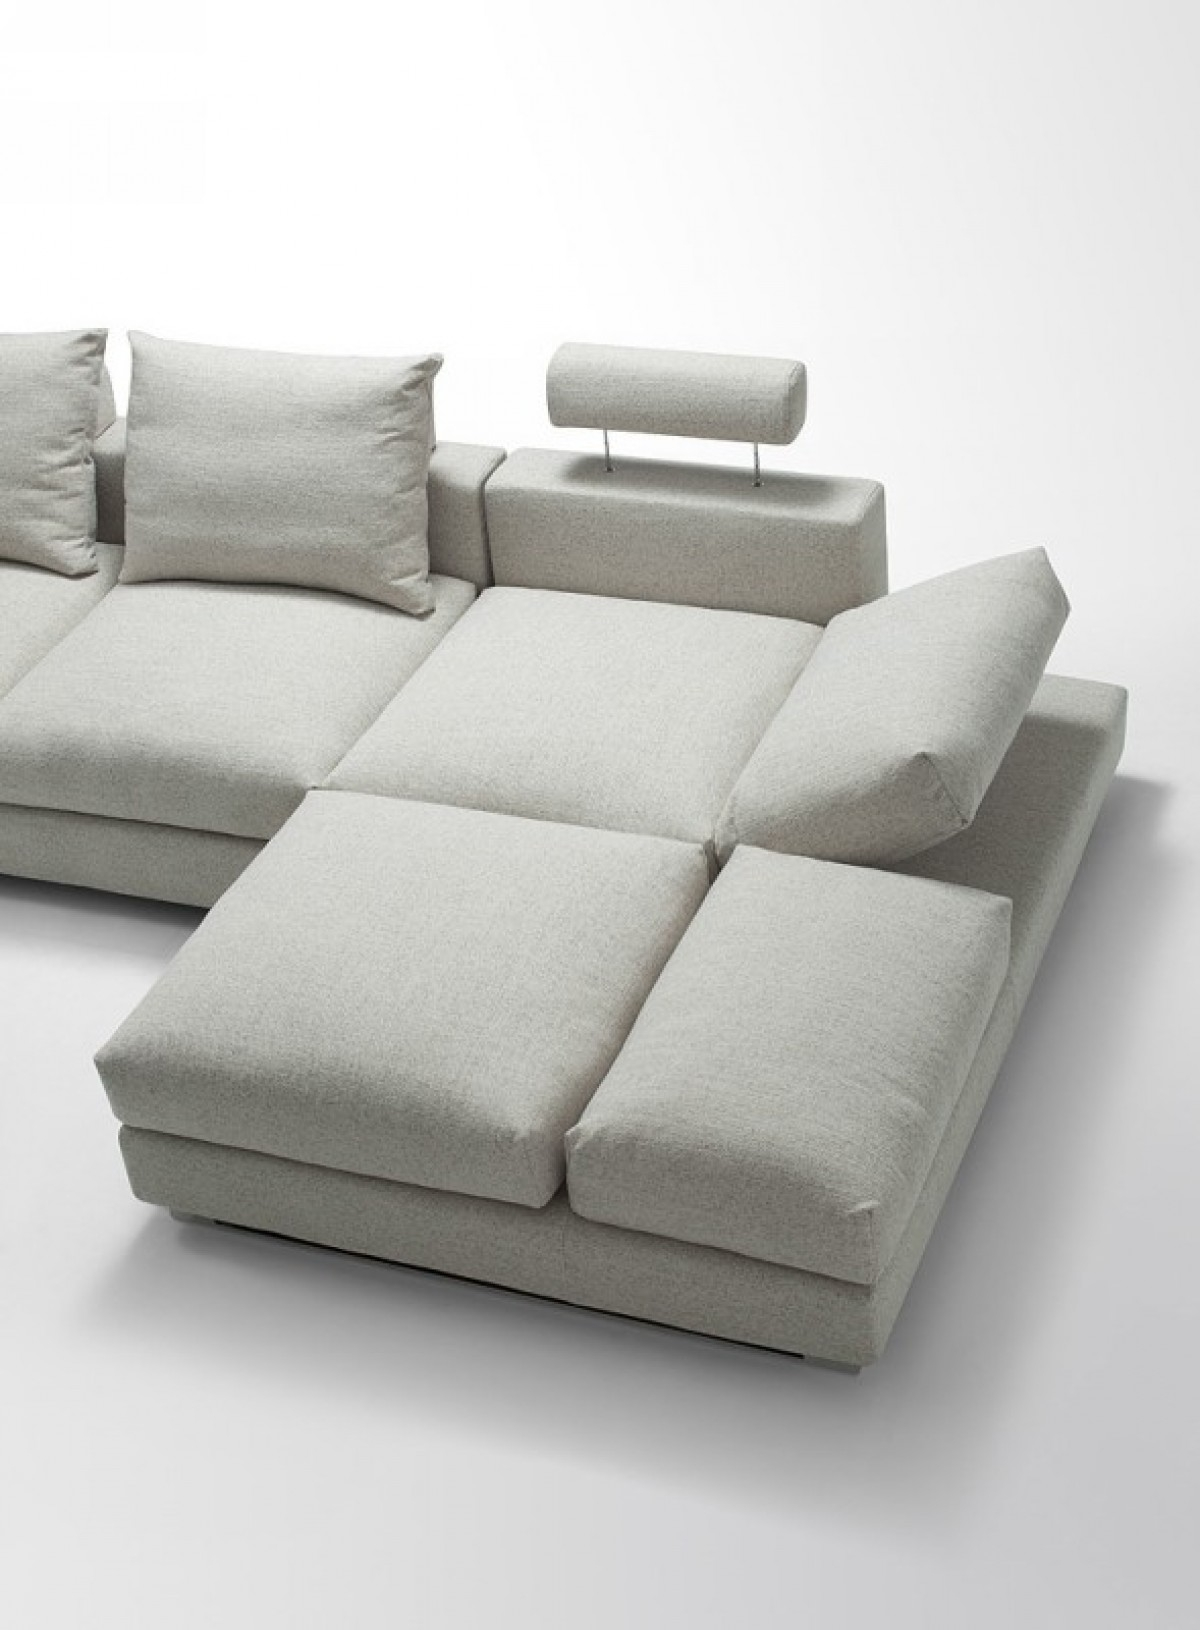 Divani Casa Vasto Modern Fabric Sectional Sofa With Down Feather With Down Feather Sectional Sofa (Image 5 of 15)